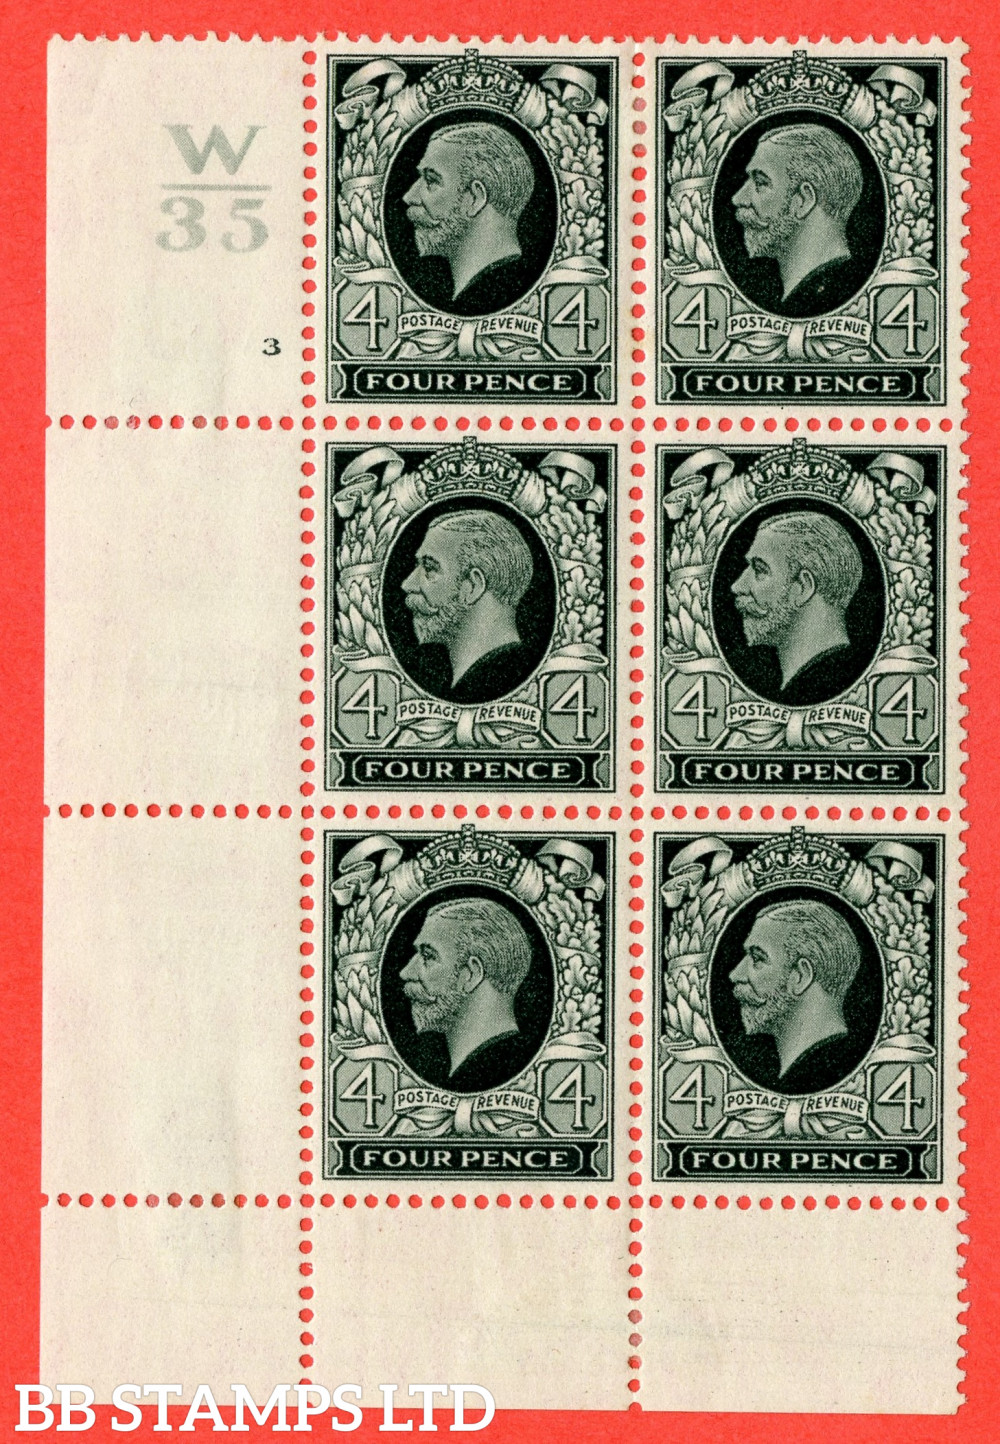 SG. 445. N58. 4d Grey-Green. A fine mint block of 6. Control W35. Cylinder 3 dot perf type 2A P/P. Cylinder 3 perf type 2A (P/P) has no dot, presumably ommitted in error.